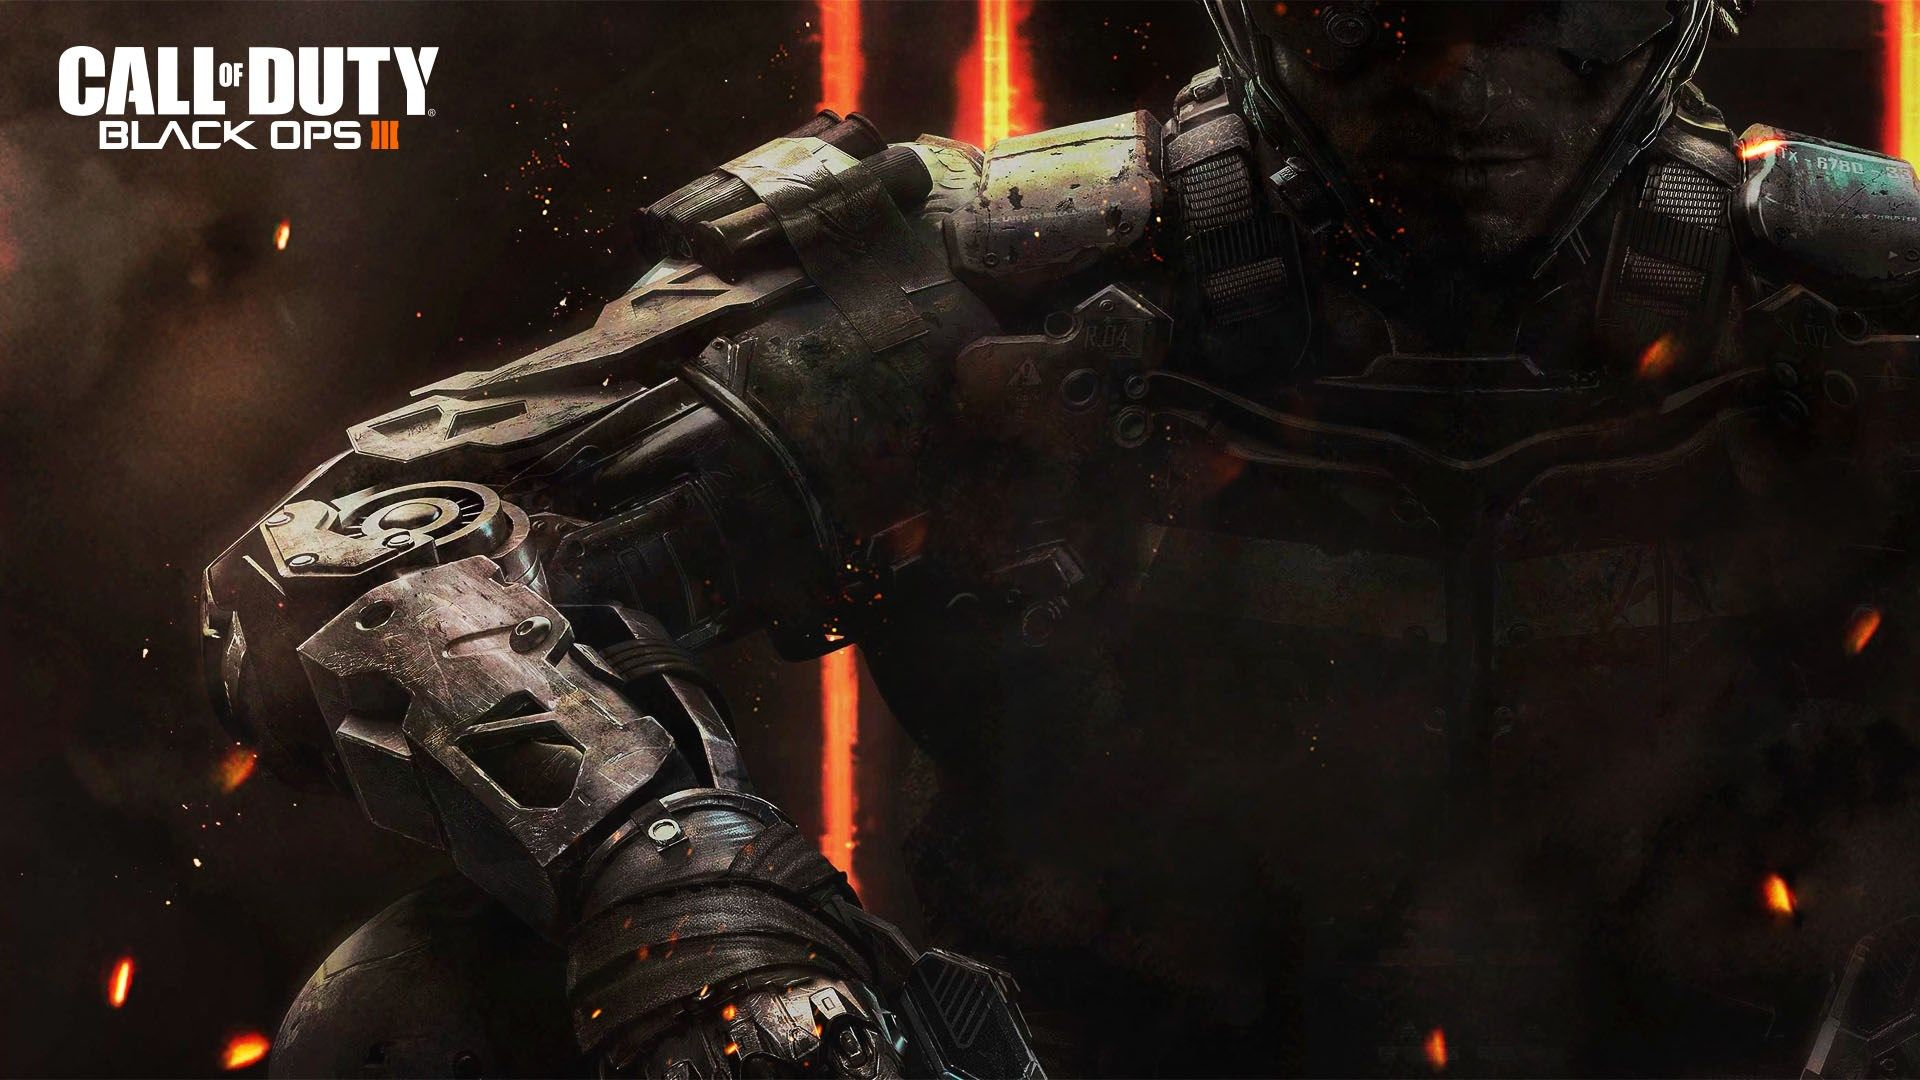 Black Ops 3 Live Wallpaper Posted By Ryan Mercado